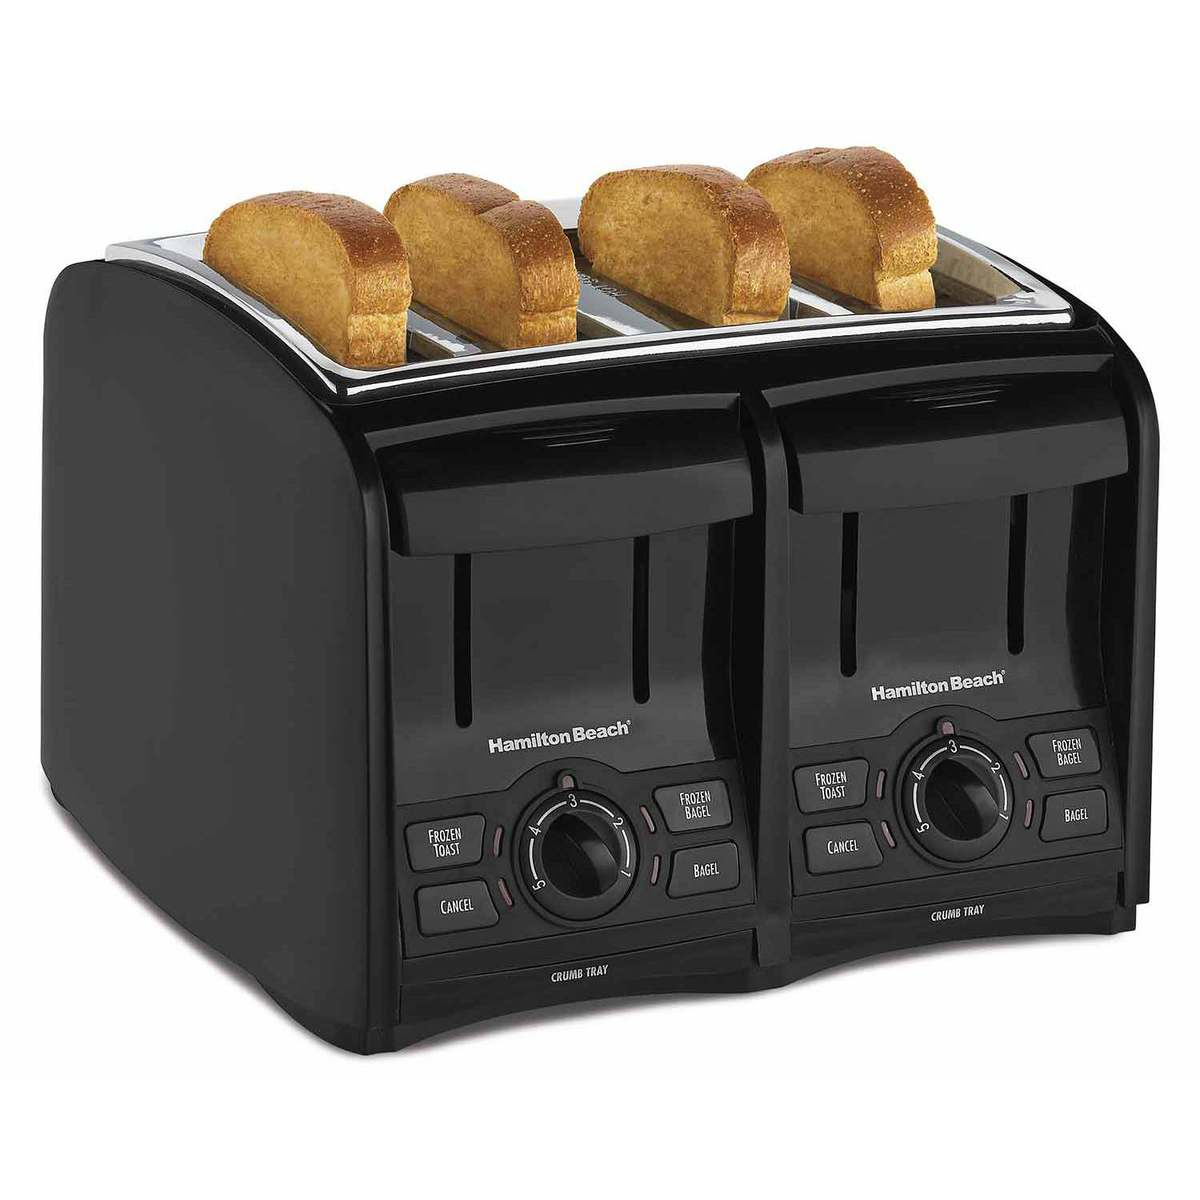 PerfectToast 4 Slice Toaster - Black (24121)